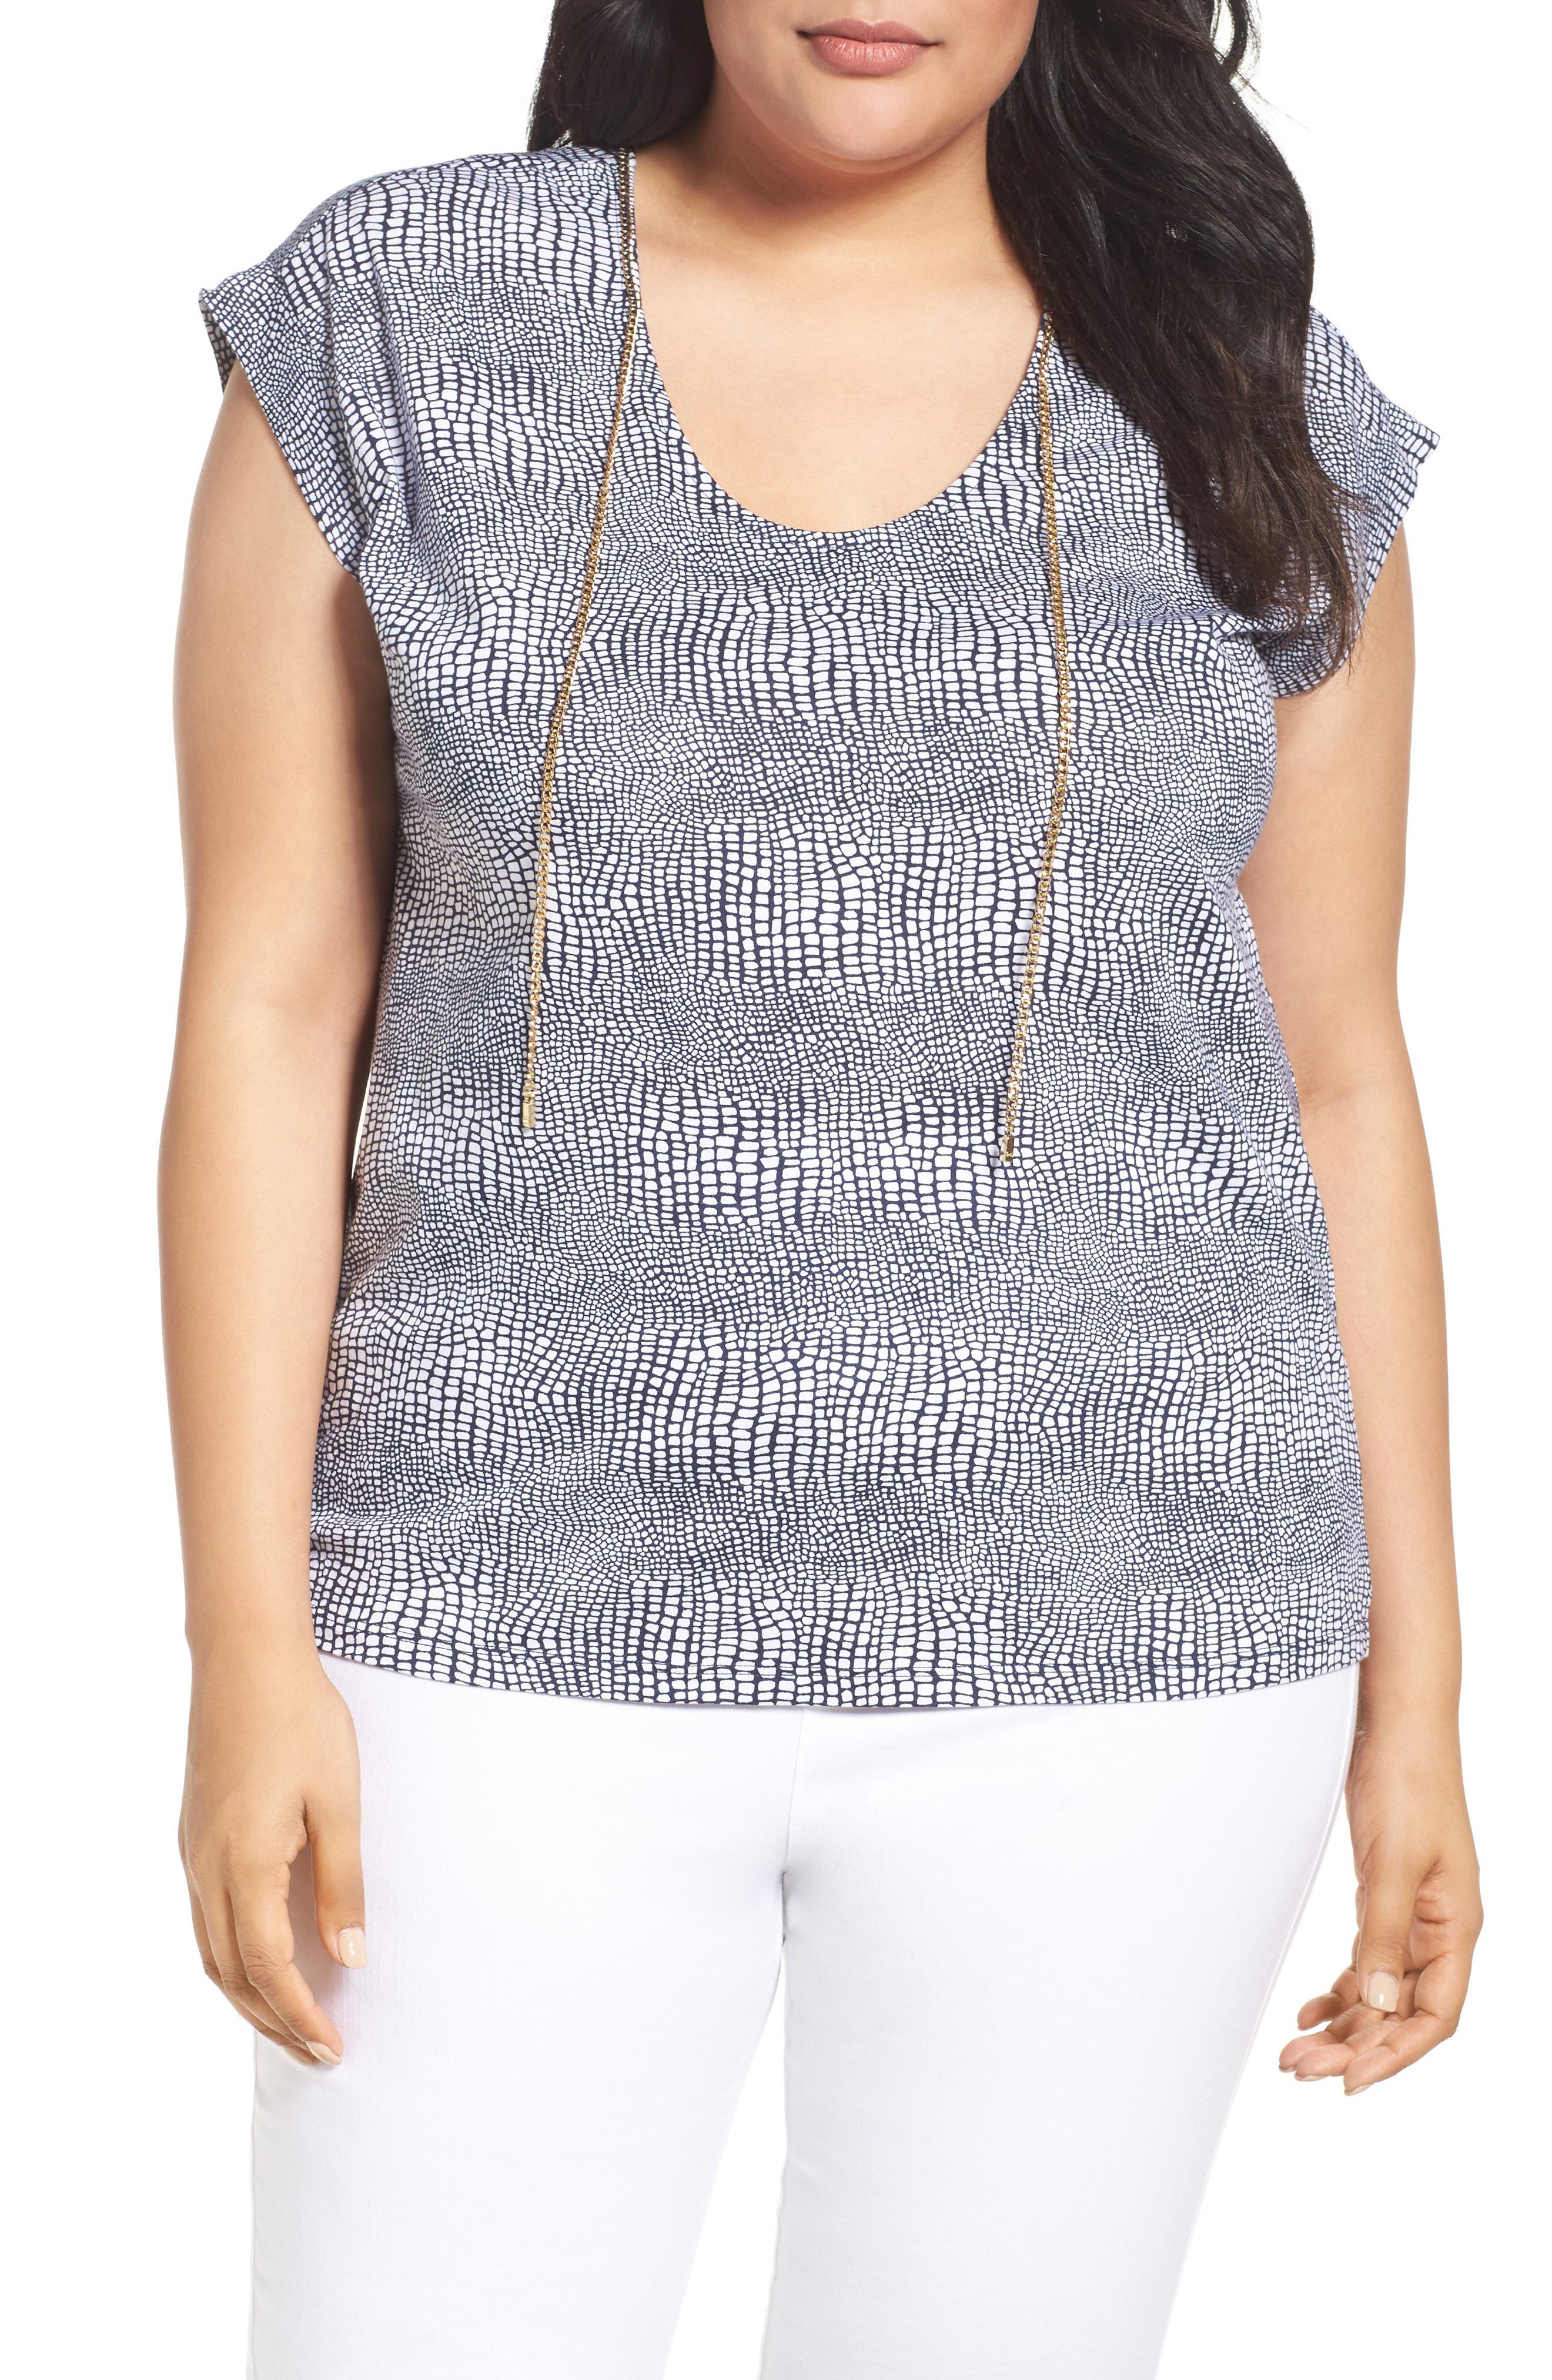 Main Image - MICHAEL Michael Kors Zephyr Chain Neck Top (Plus Size)